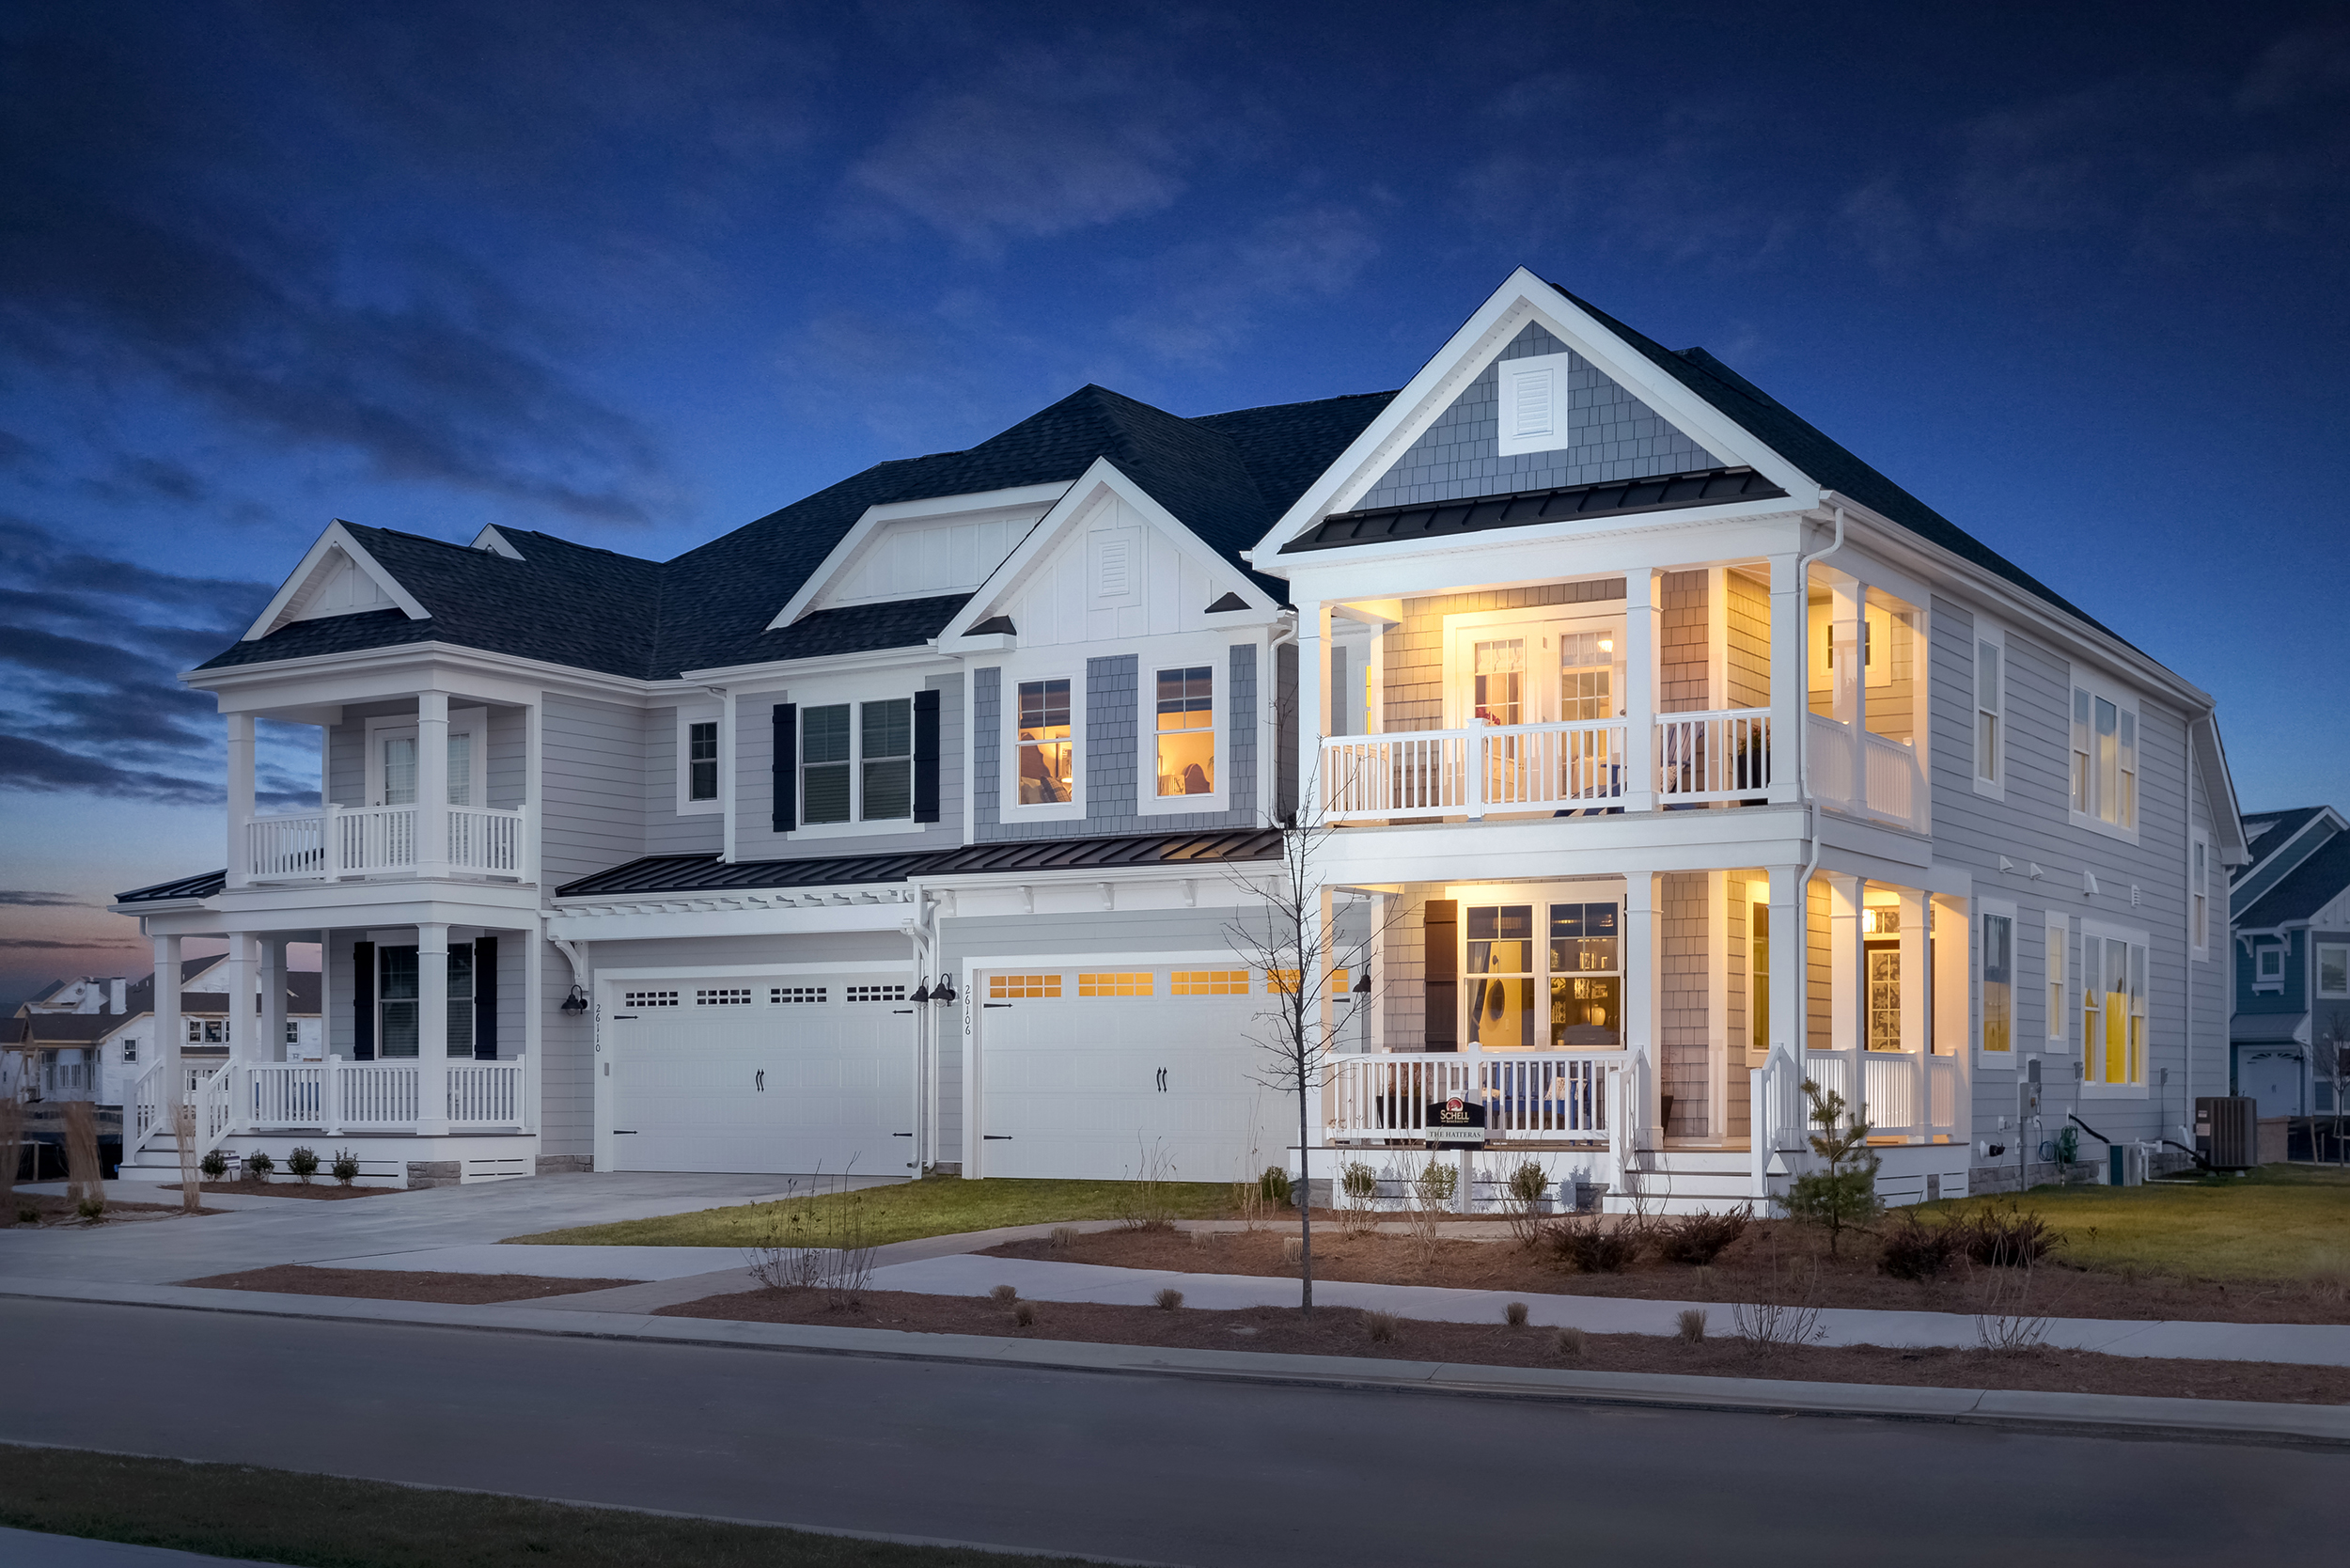 The Hatteras Model Home Bayside Schell Brothers